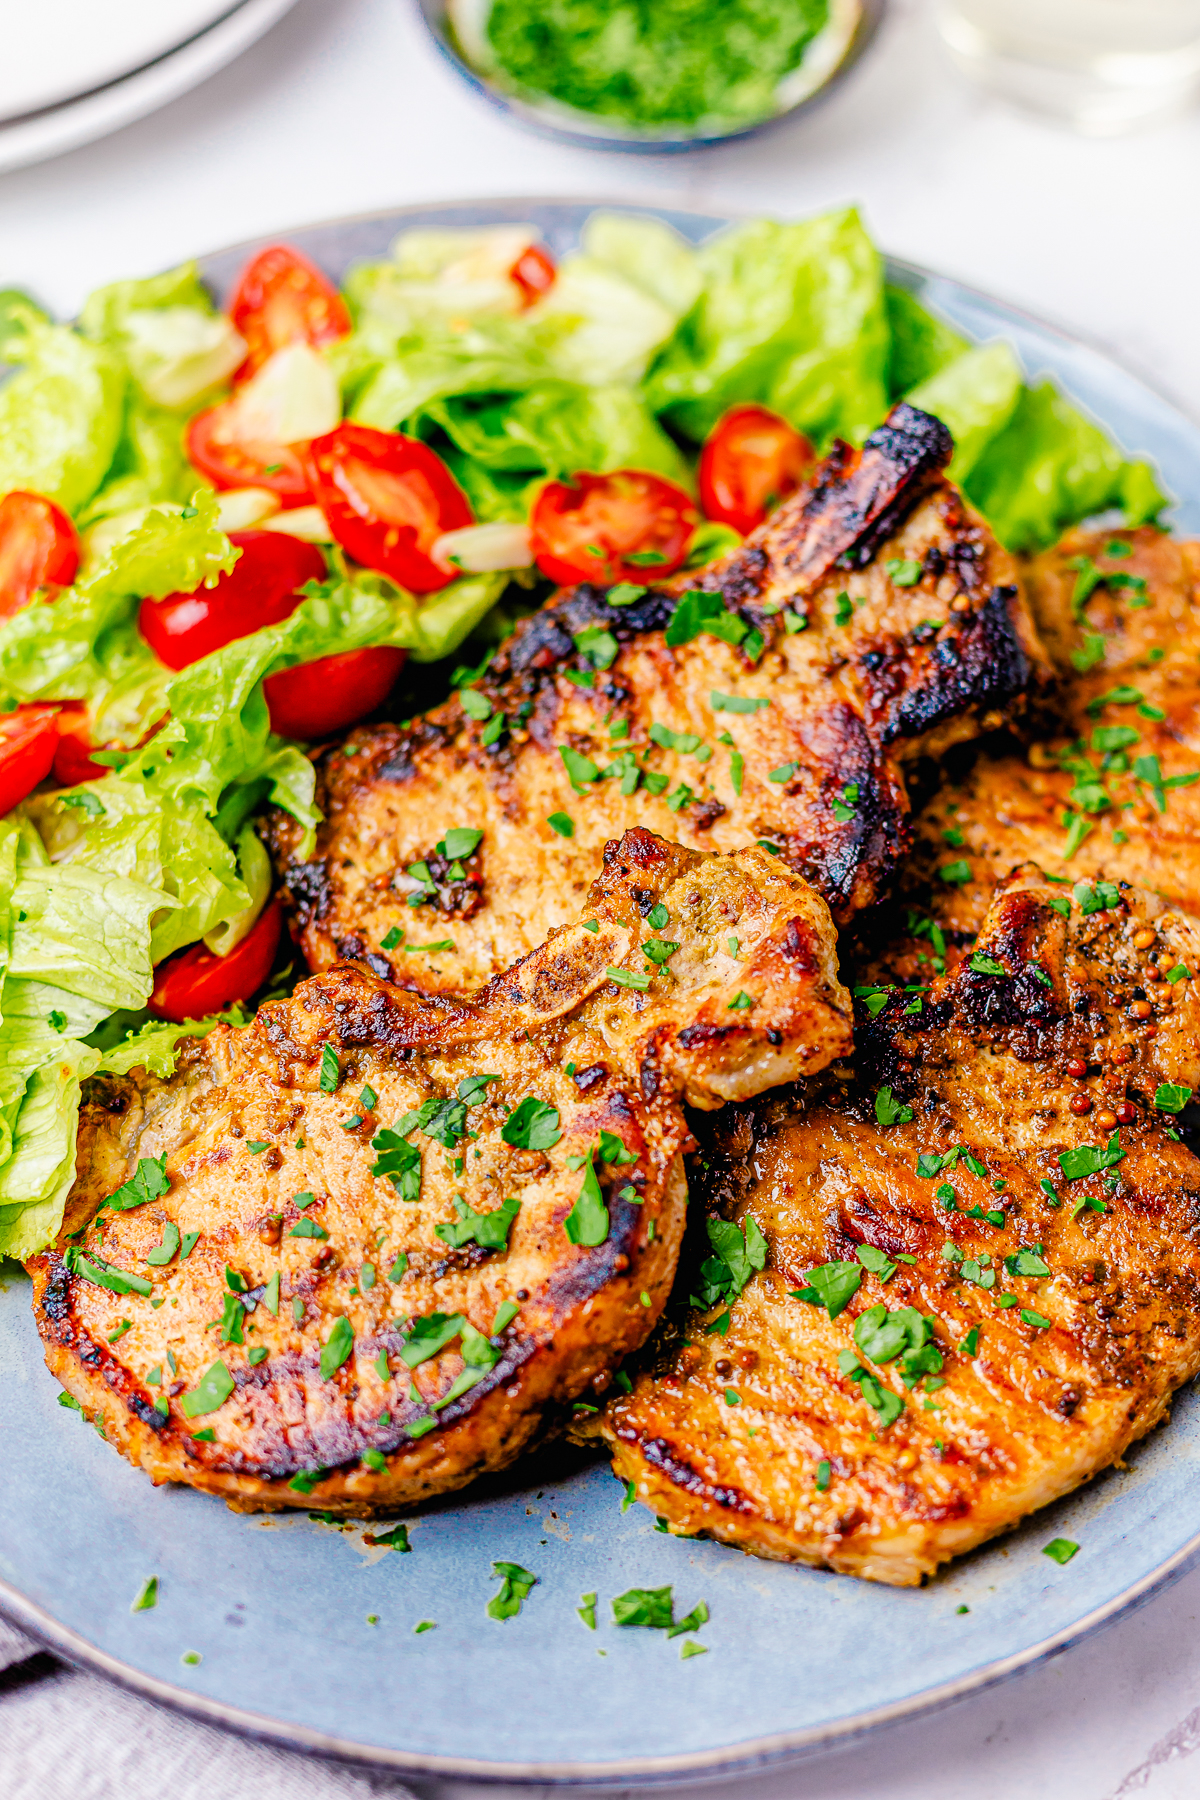 Two Grilled Pork Chops on plate with salad